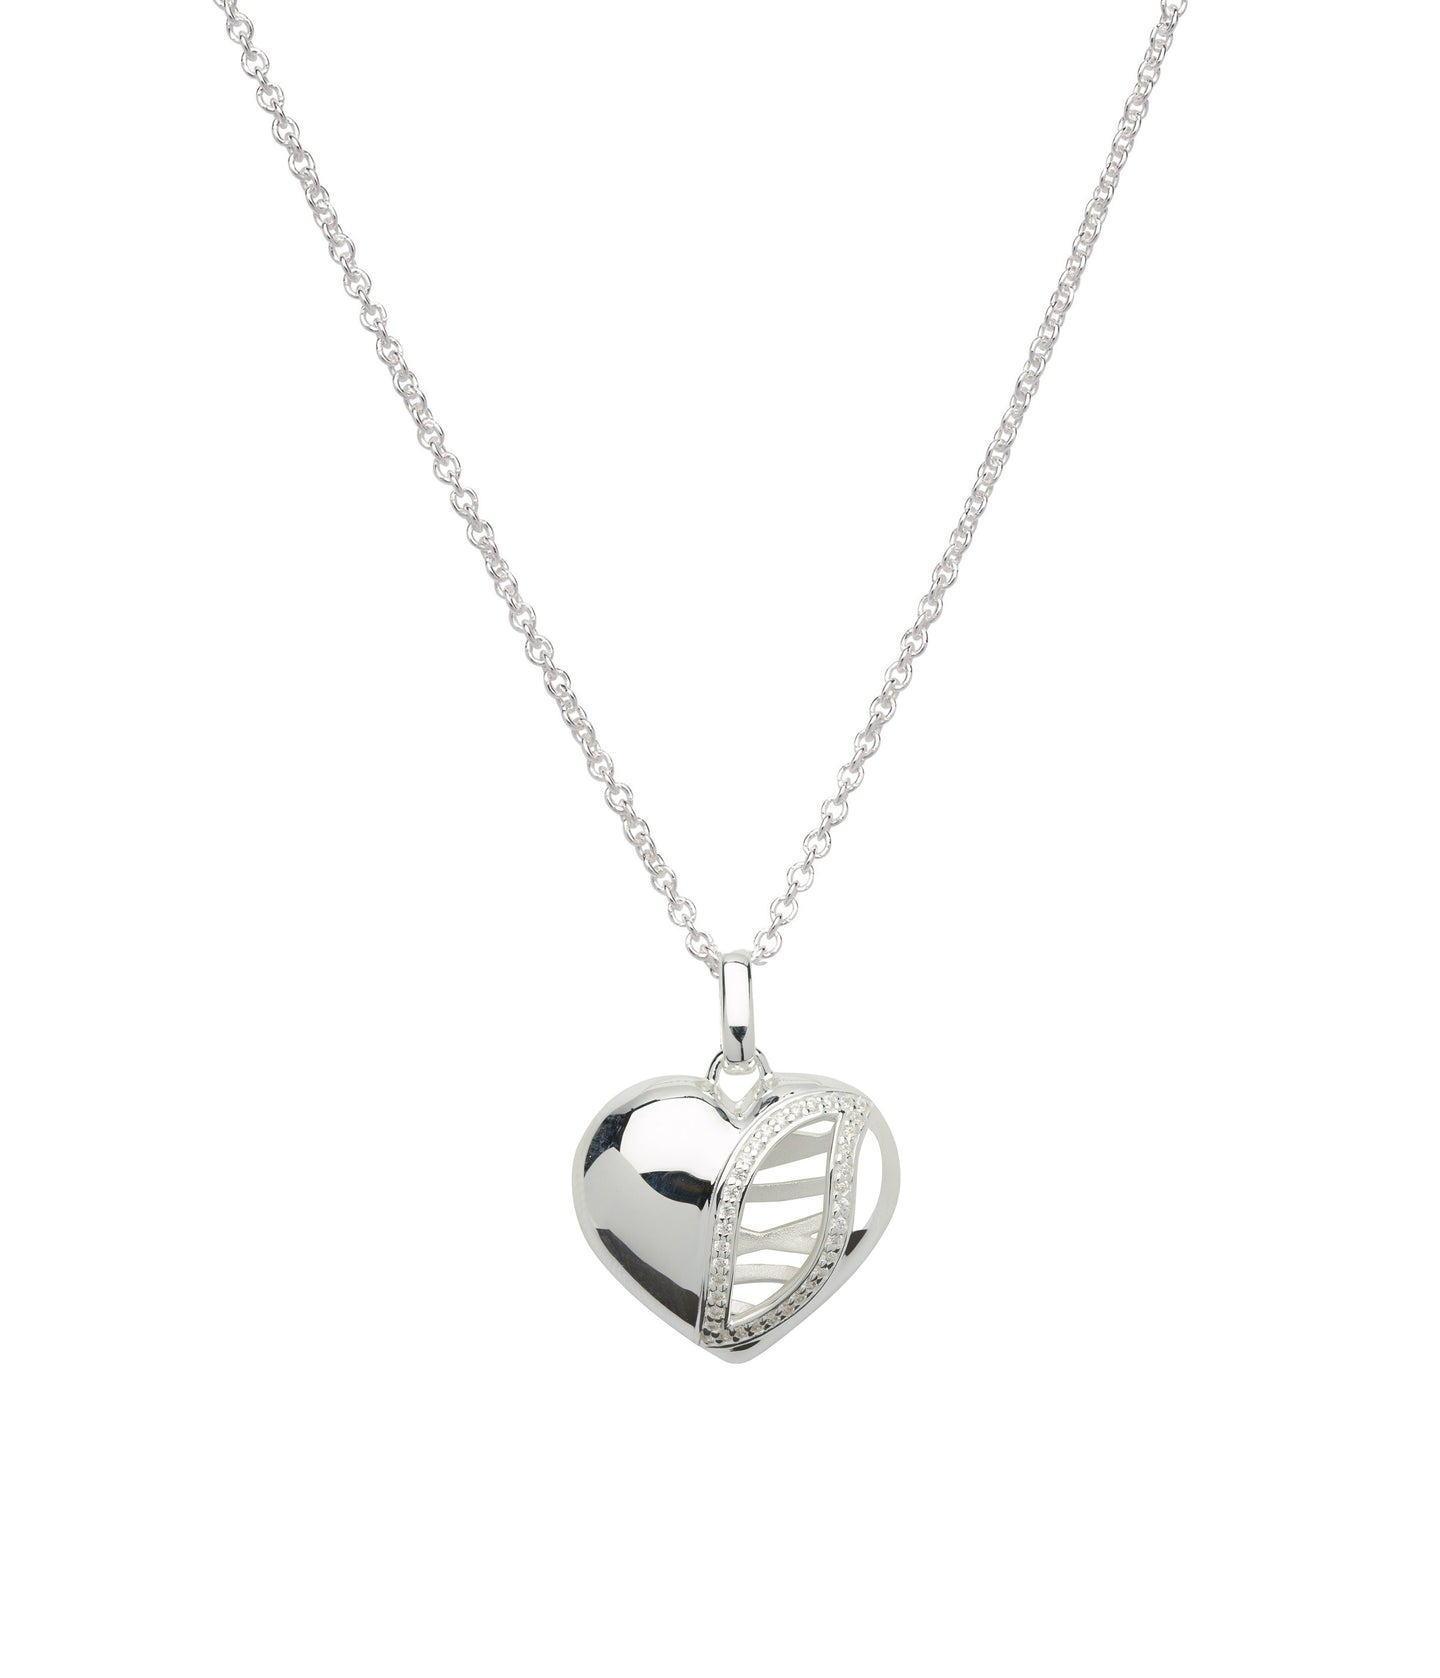 Silver Statement Heart Pendant with Chain MK-628